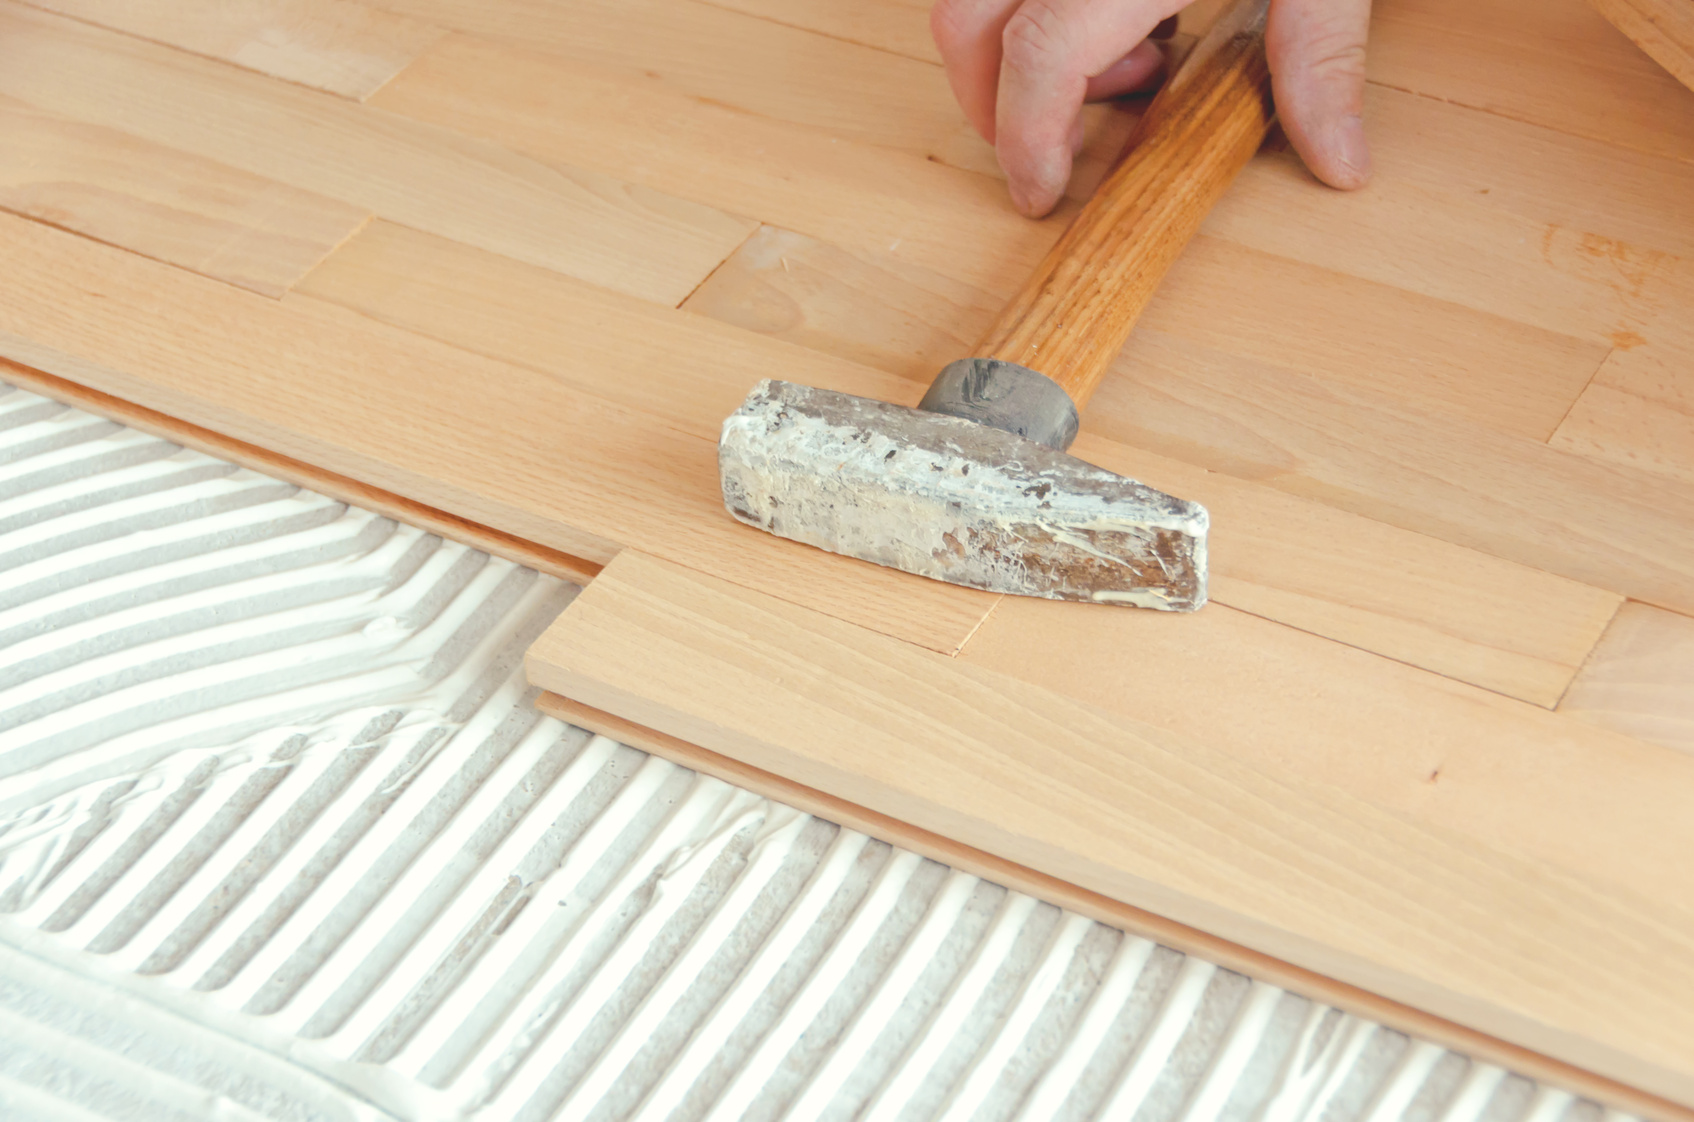 Wood flooring is a beautiful material, and one that requires careful installation to avoid callbacks.